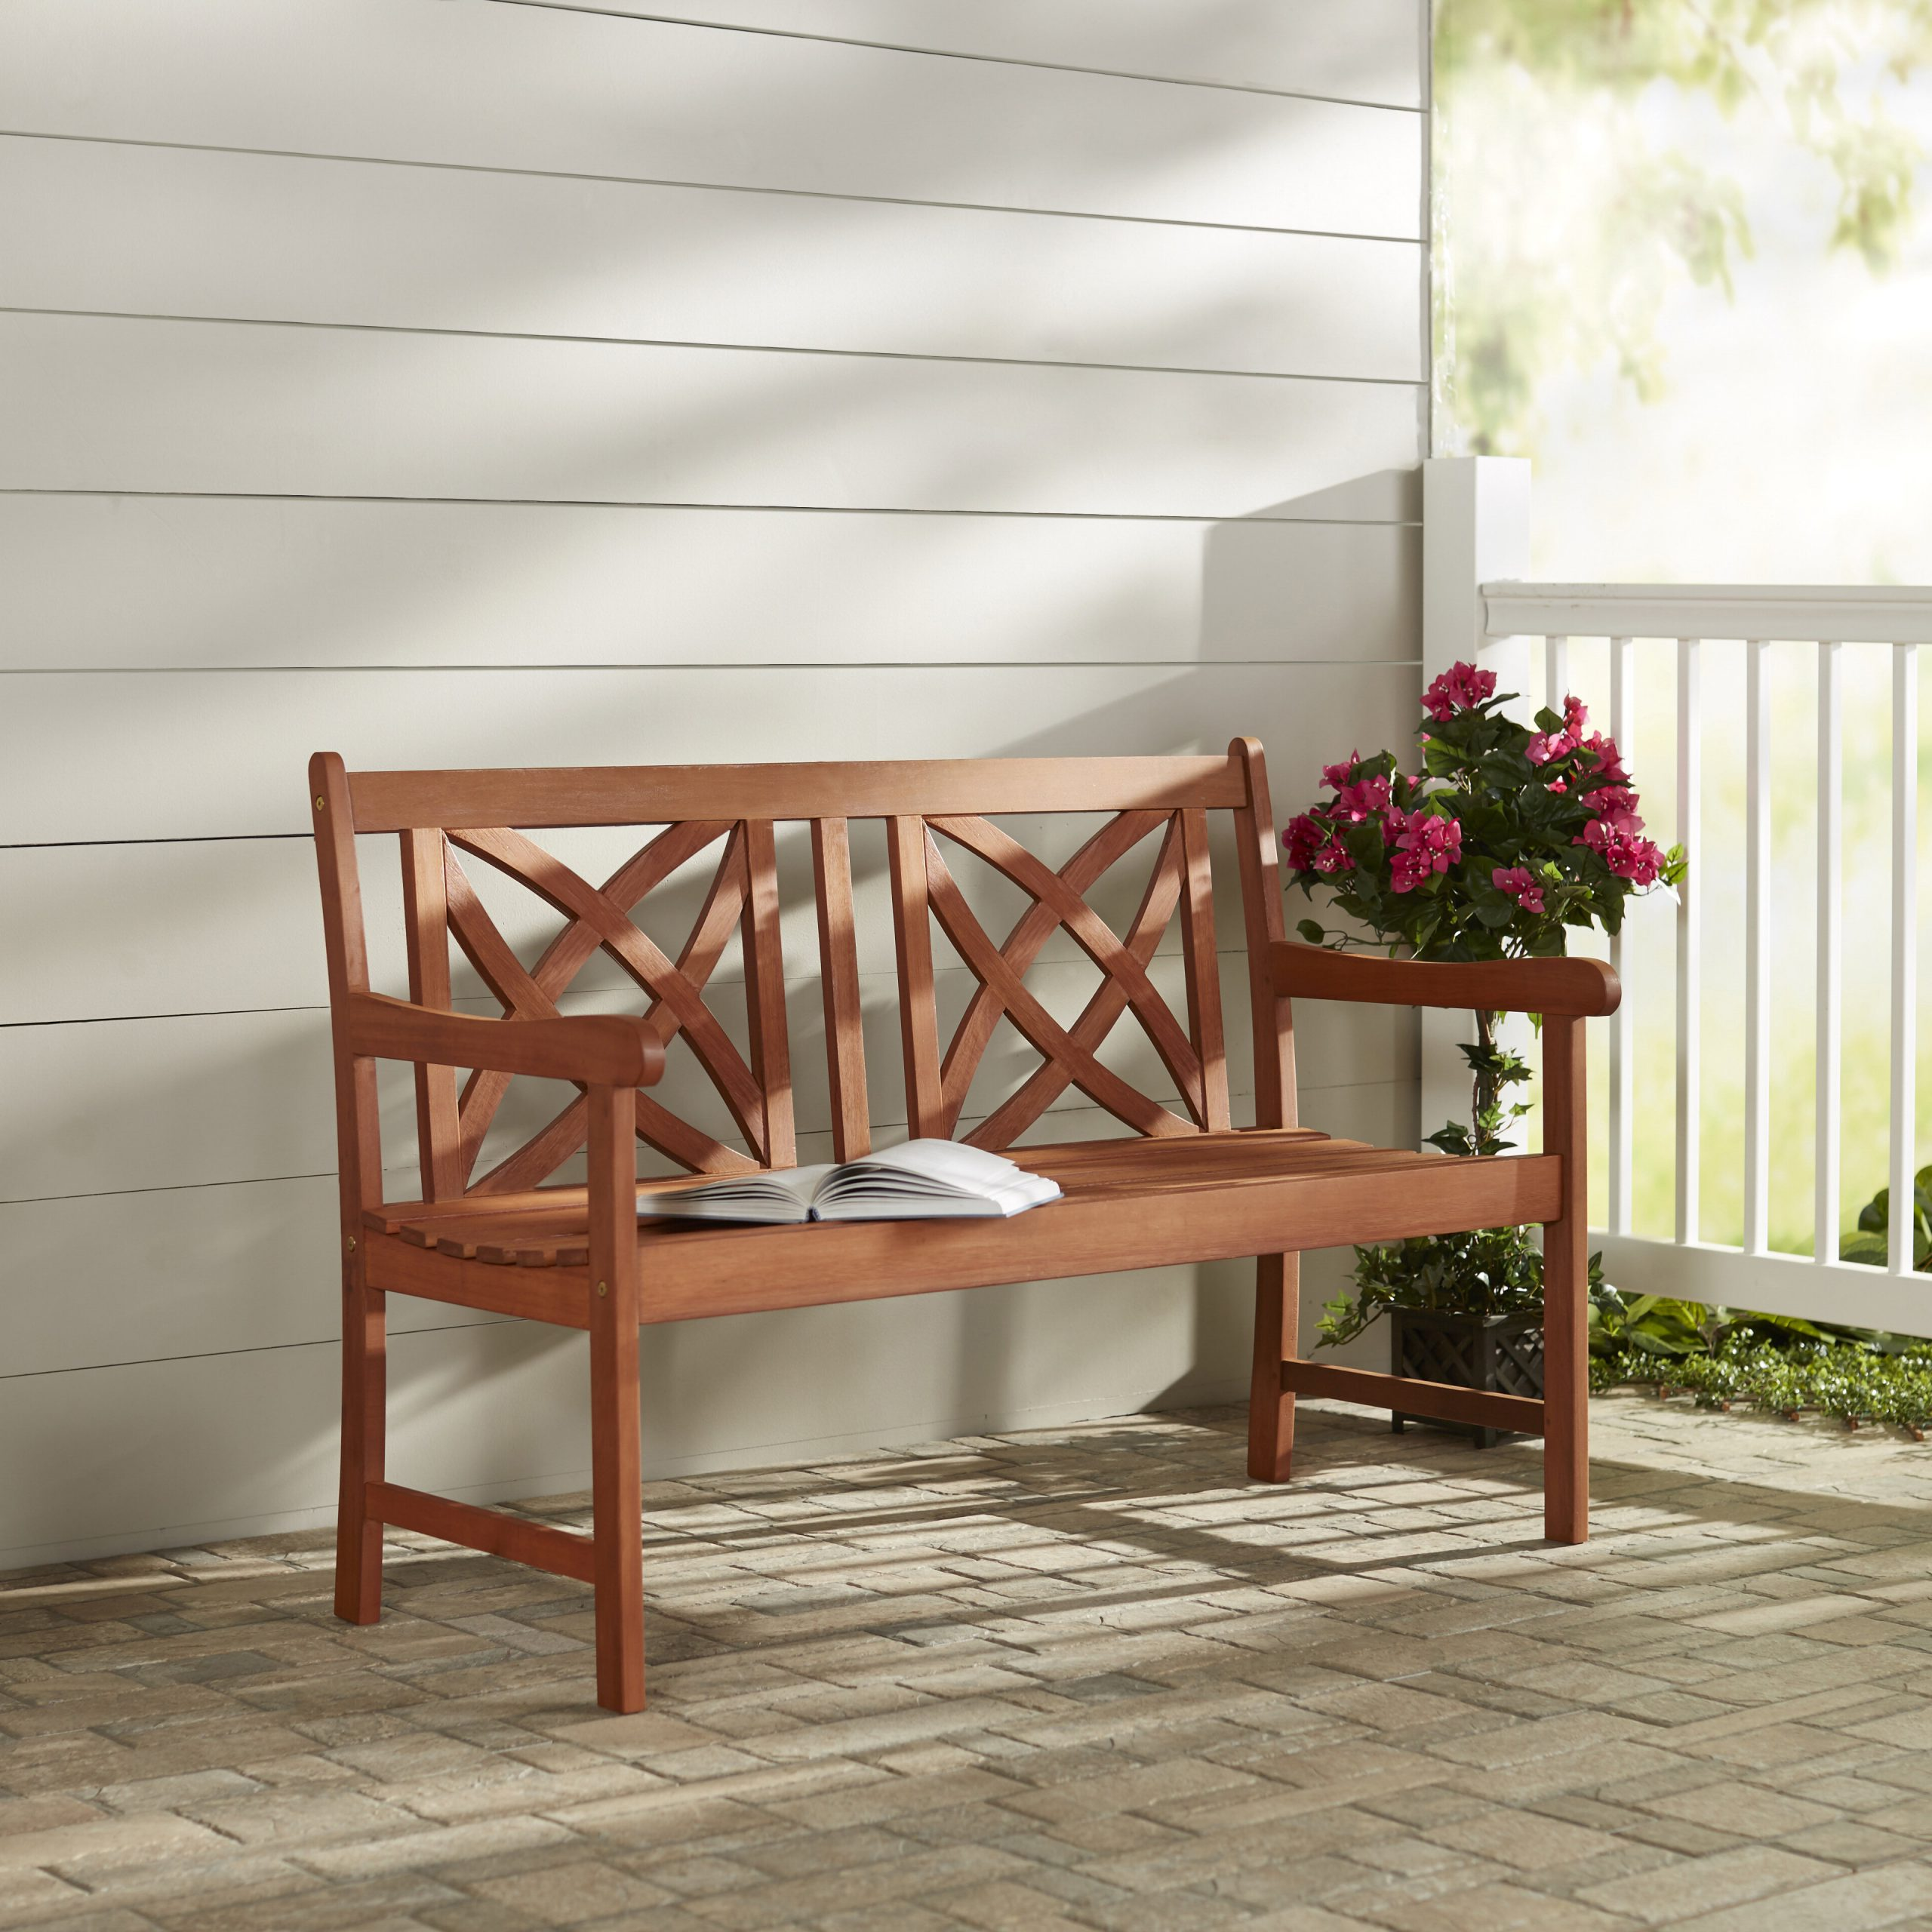 Maliyah Wooden Garden Bench Pertaining To Trendy Manchester Solid Wood Garden Benches (View 10 of 30)